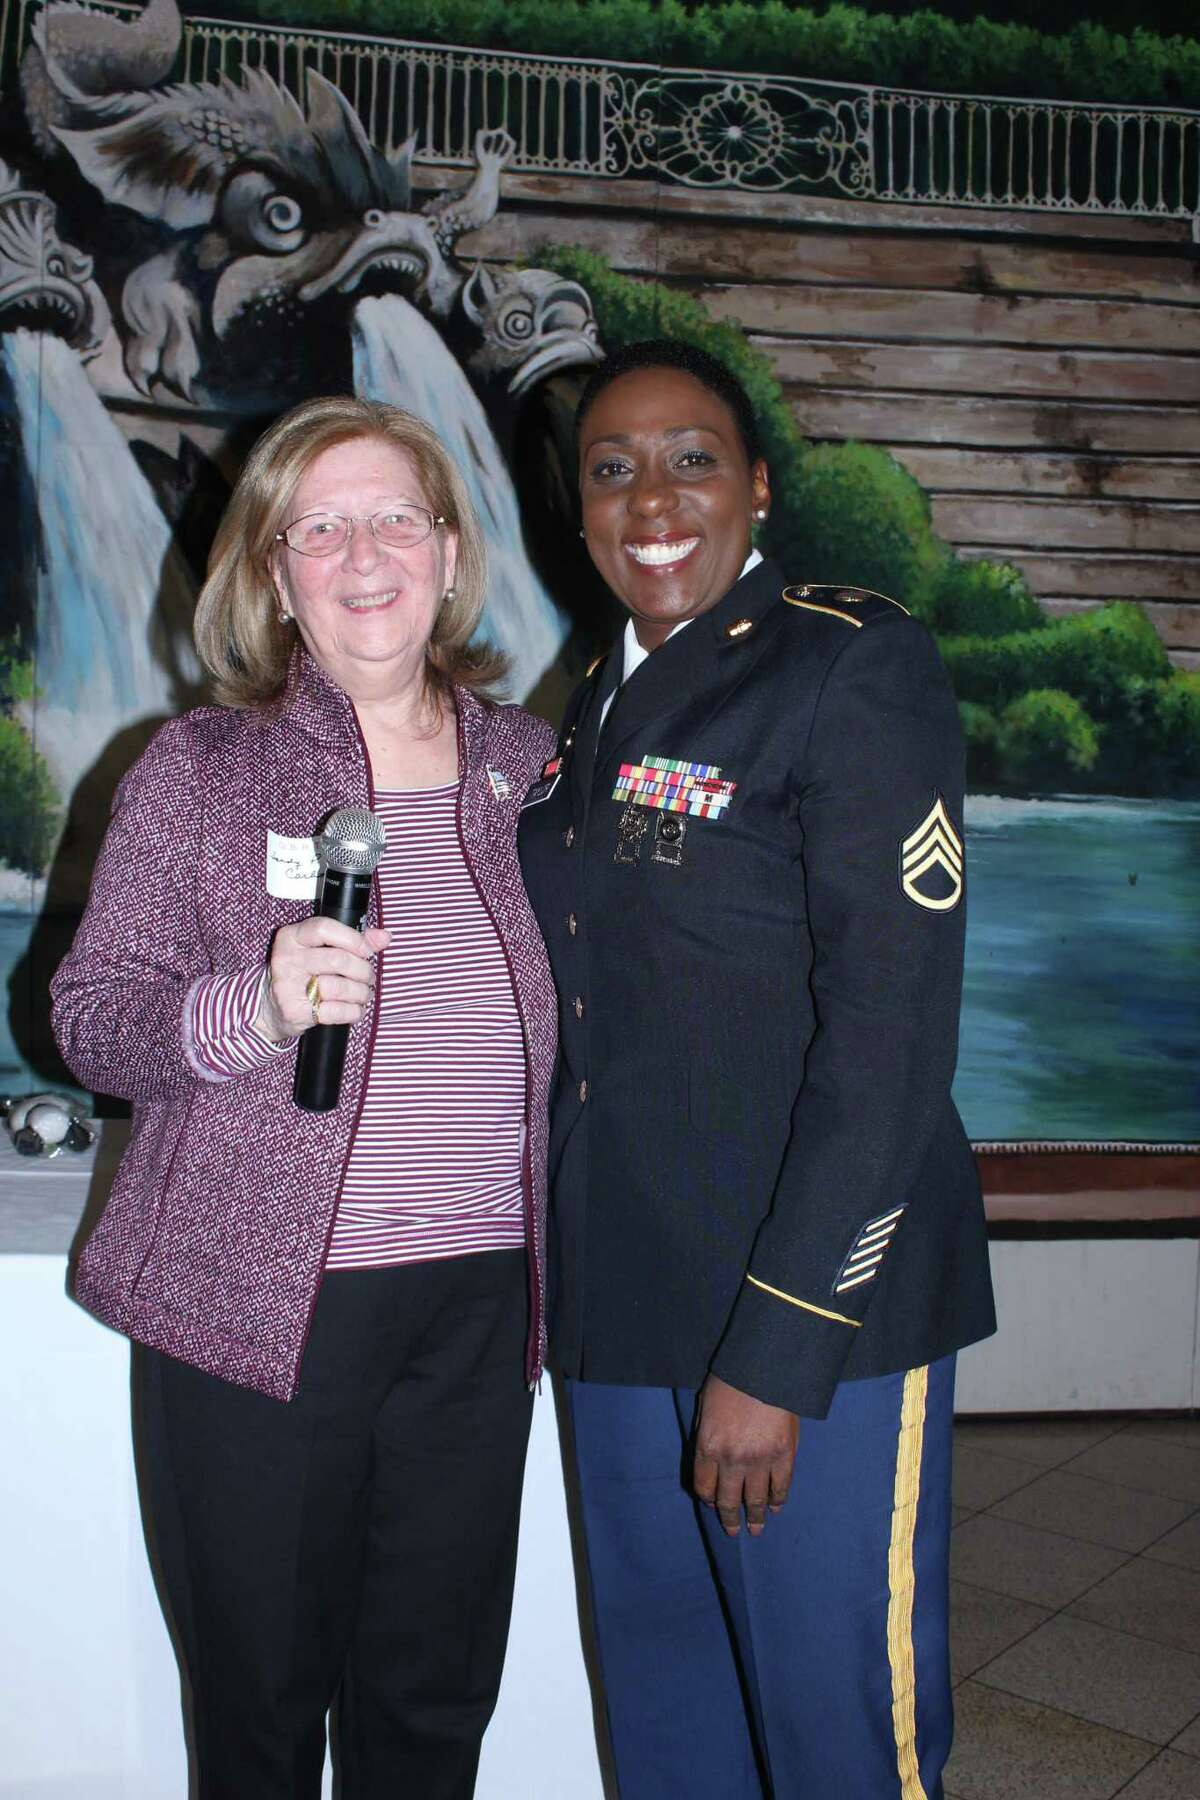 First Vice President Sandra Petrucelli-Carbone of the Greater Bridgeport Retired Teachers Association (GBRTA), introduces the November guest speaker, retired Staff Sergeant Juliet Taylor, at the annual luncheon meeting to honor veterans. The meeting was held at Testo's Restaurant in Bridgeport on Nov. 14.